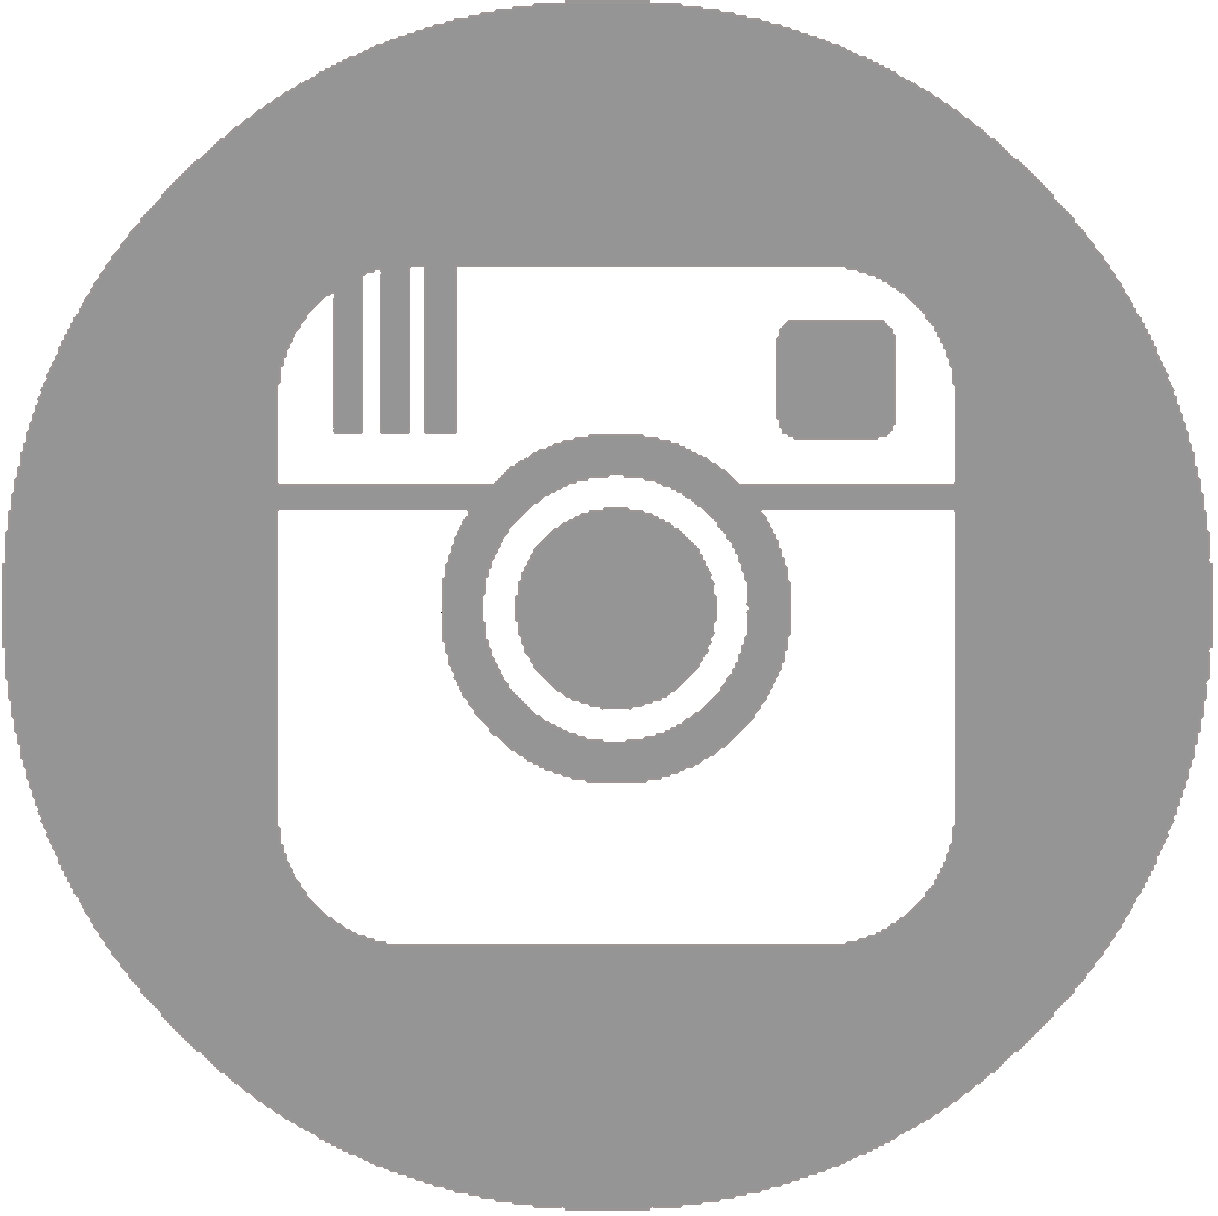 Instagram Landmeter